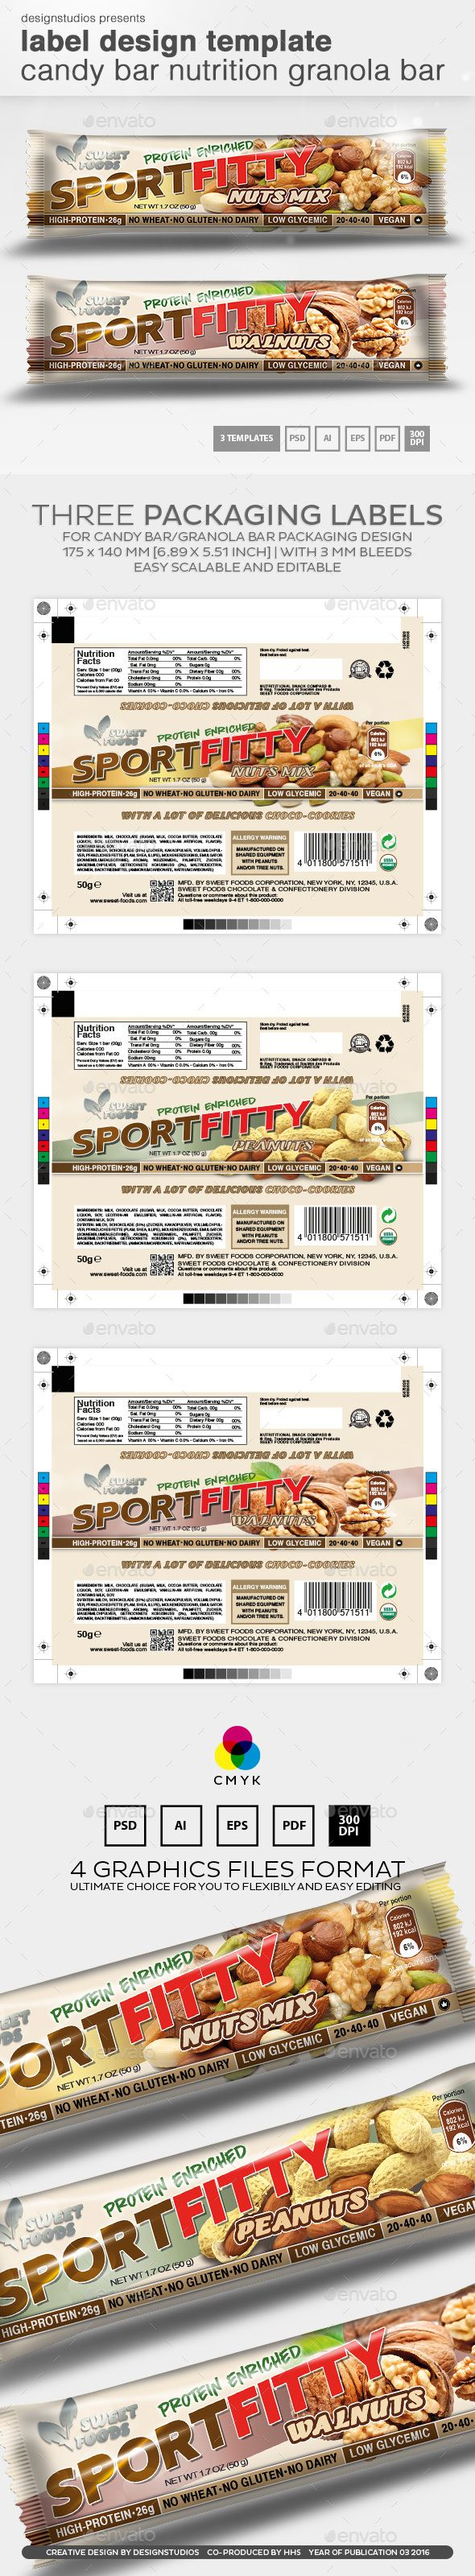 Label Design Template Candy Bar Nutrition Granola Bar – Package Label Template